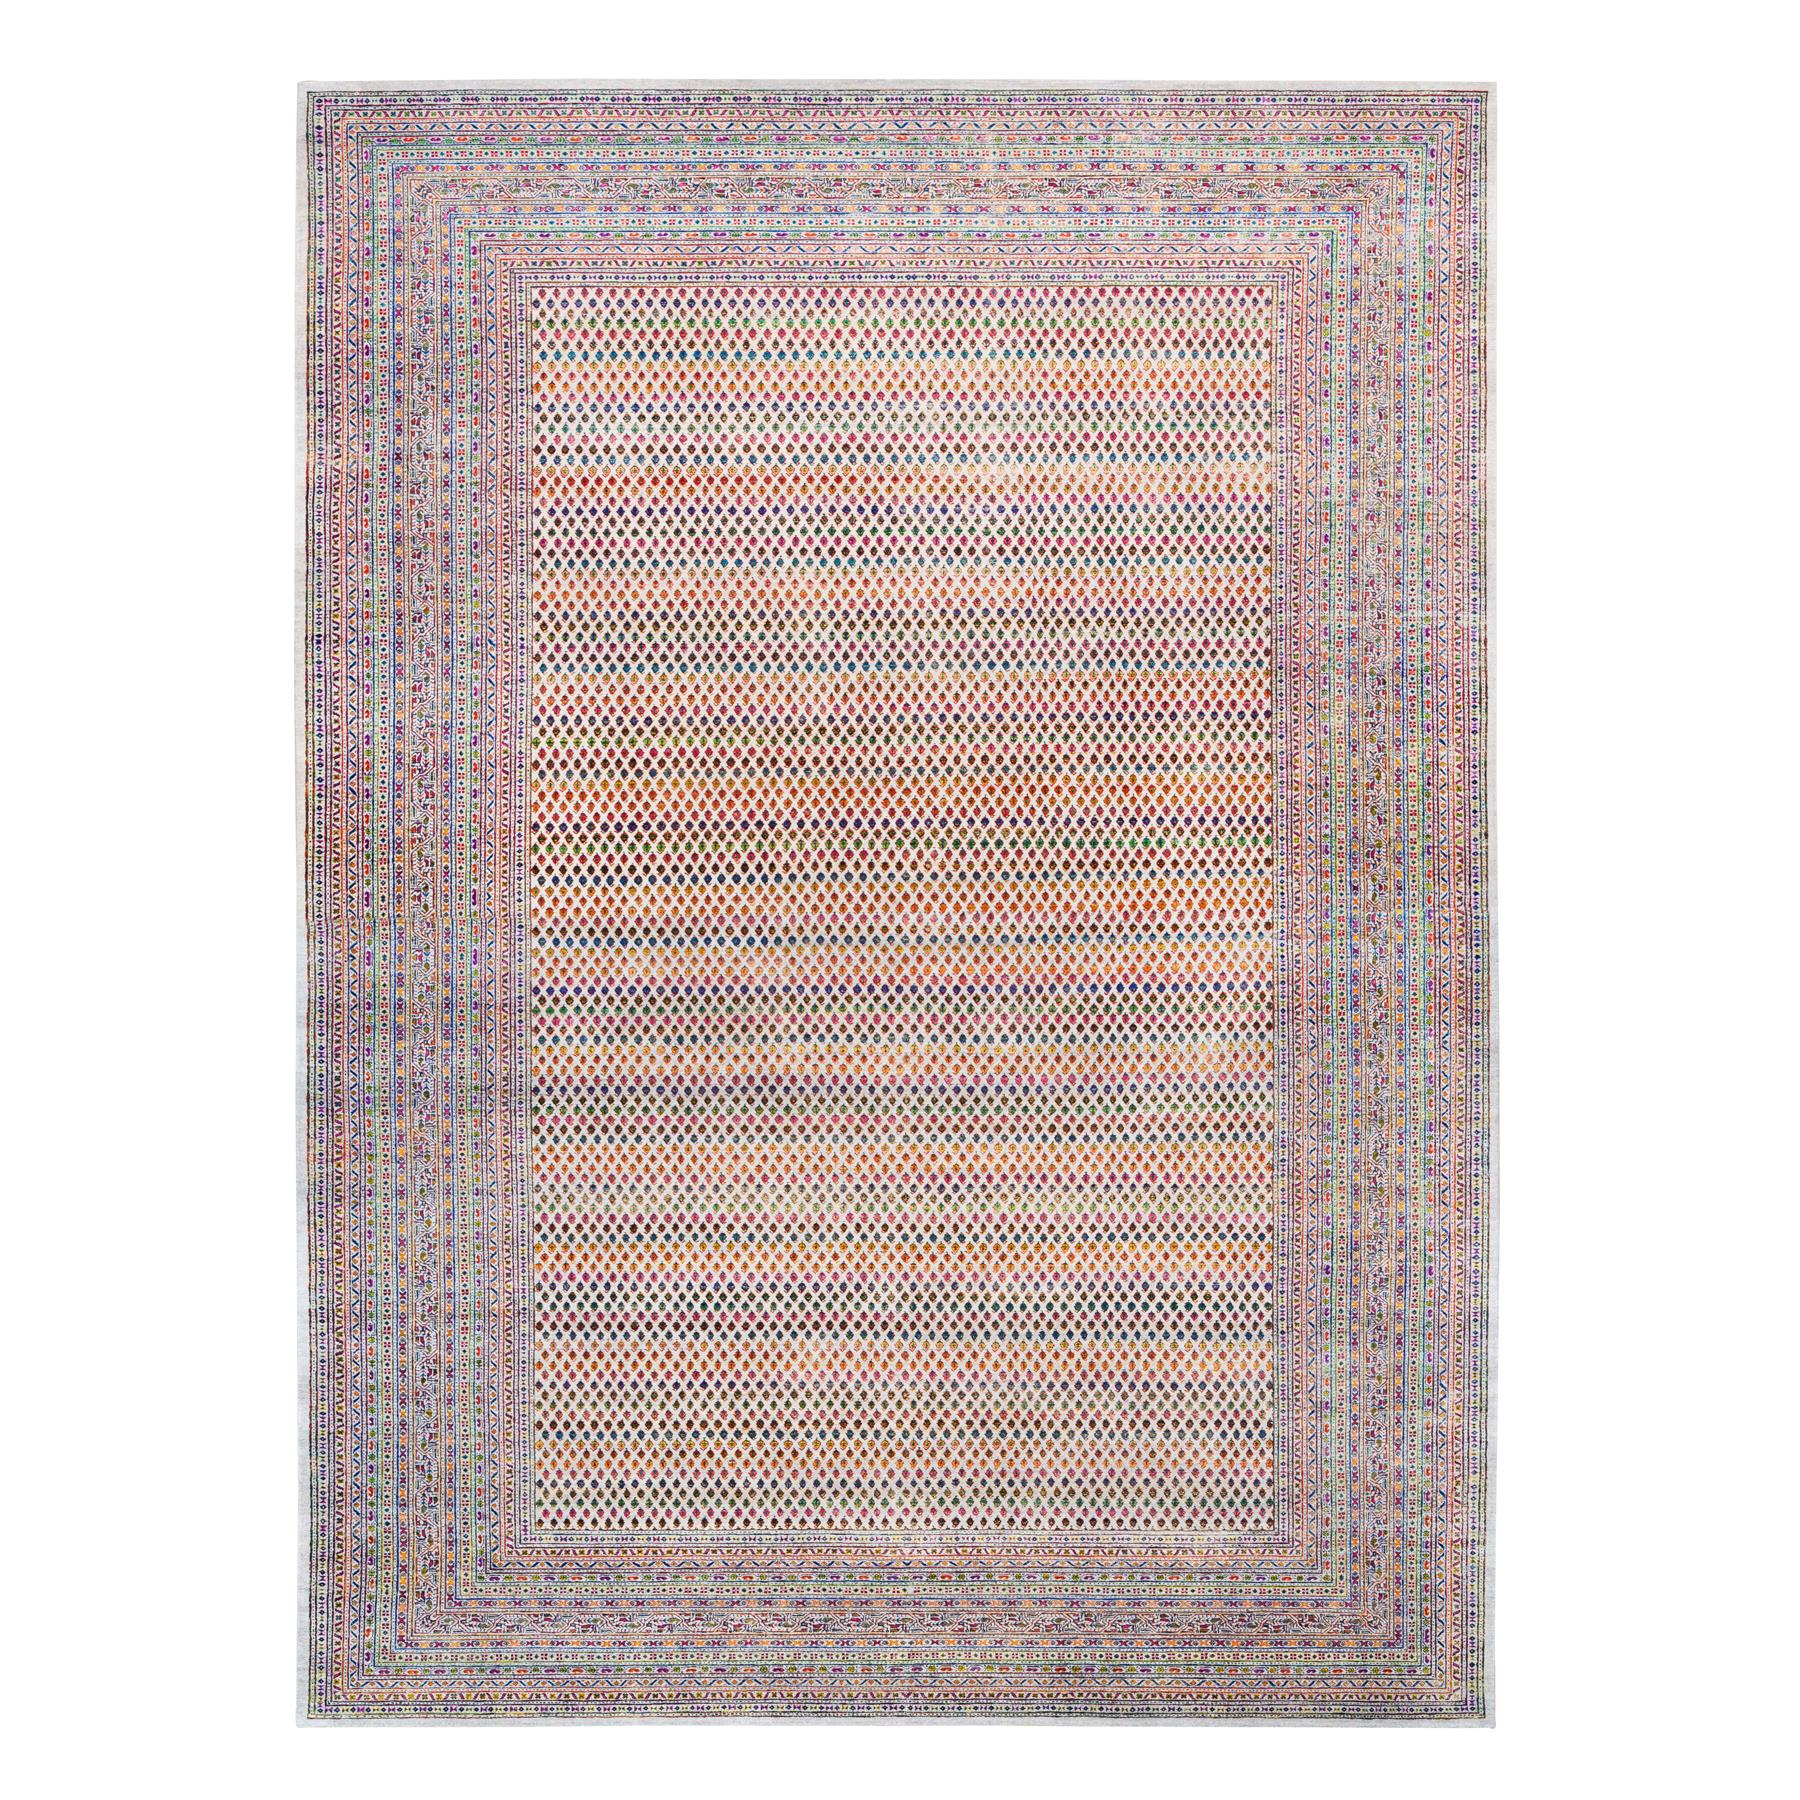 Modern & Contemporary Rugs LUV560808